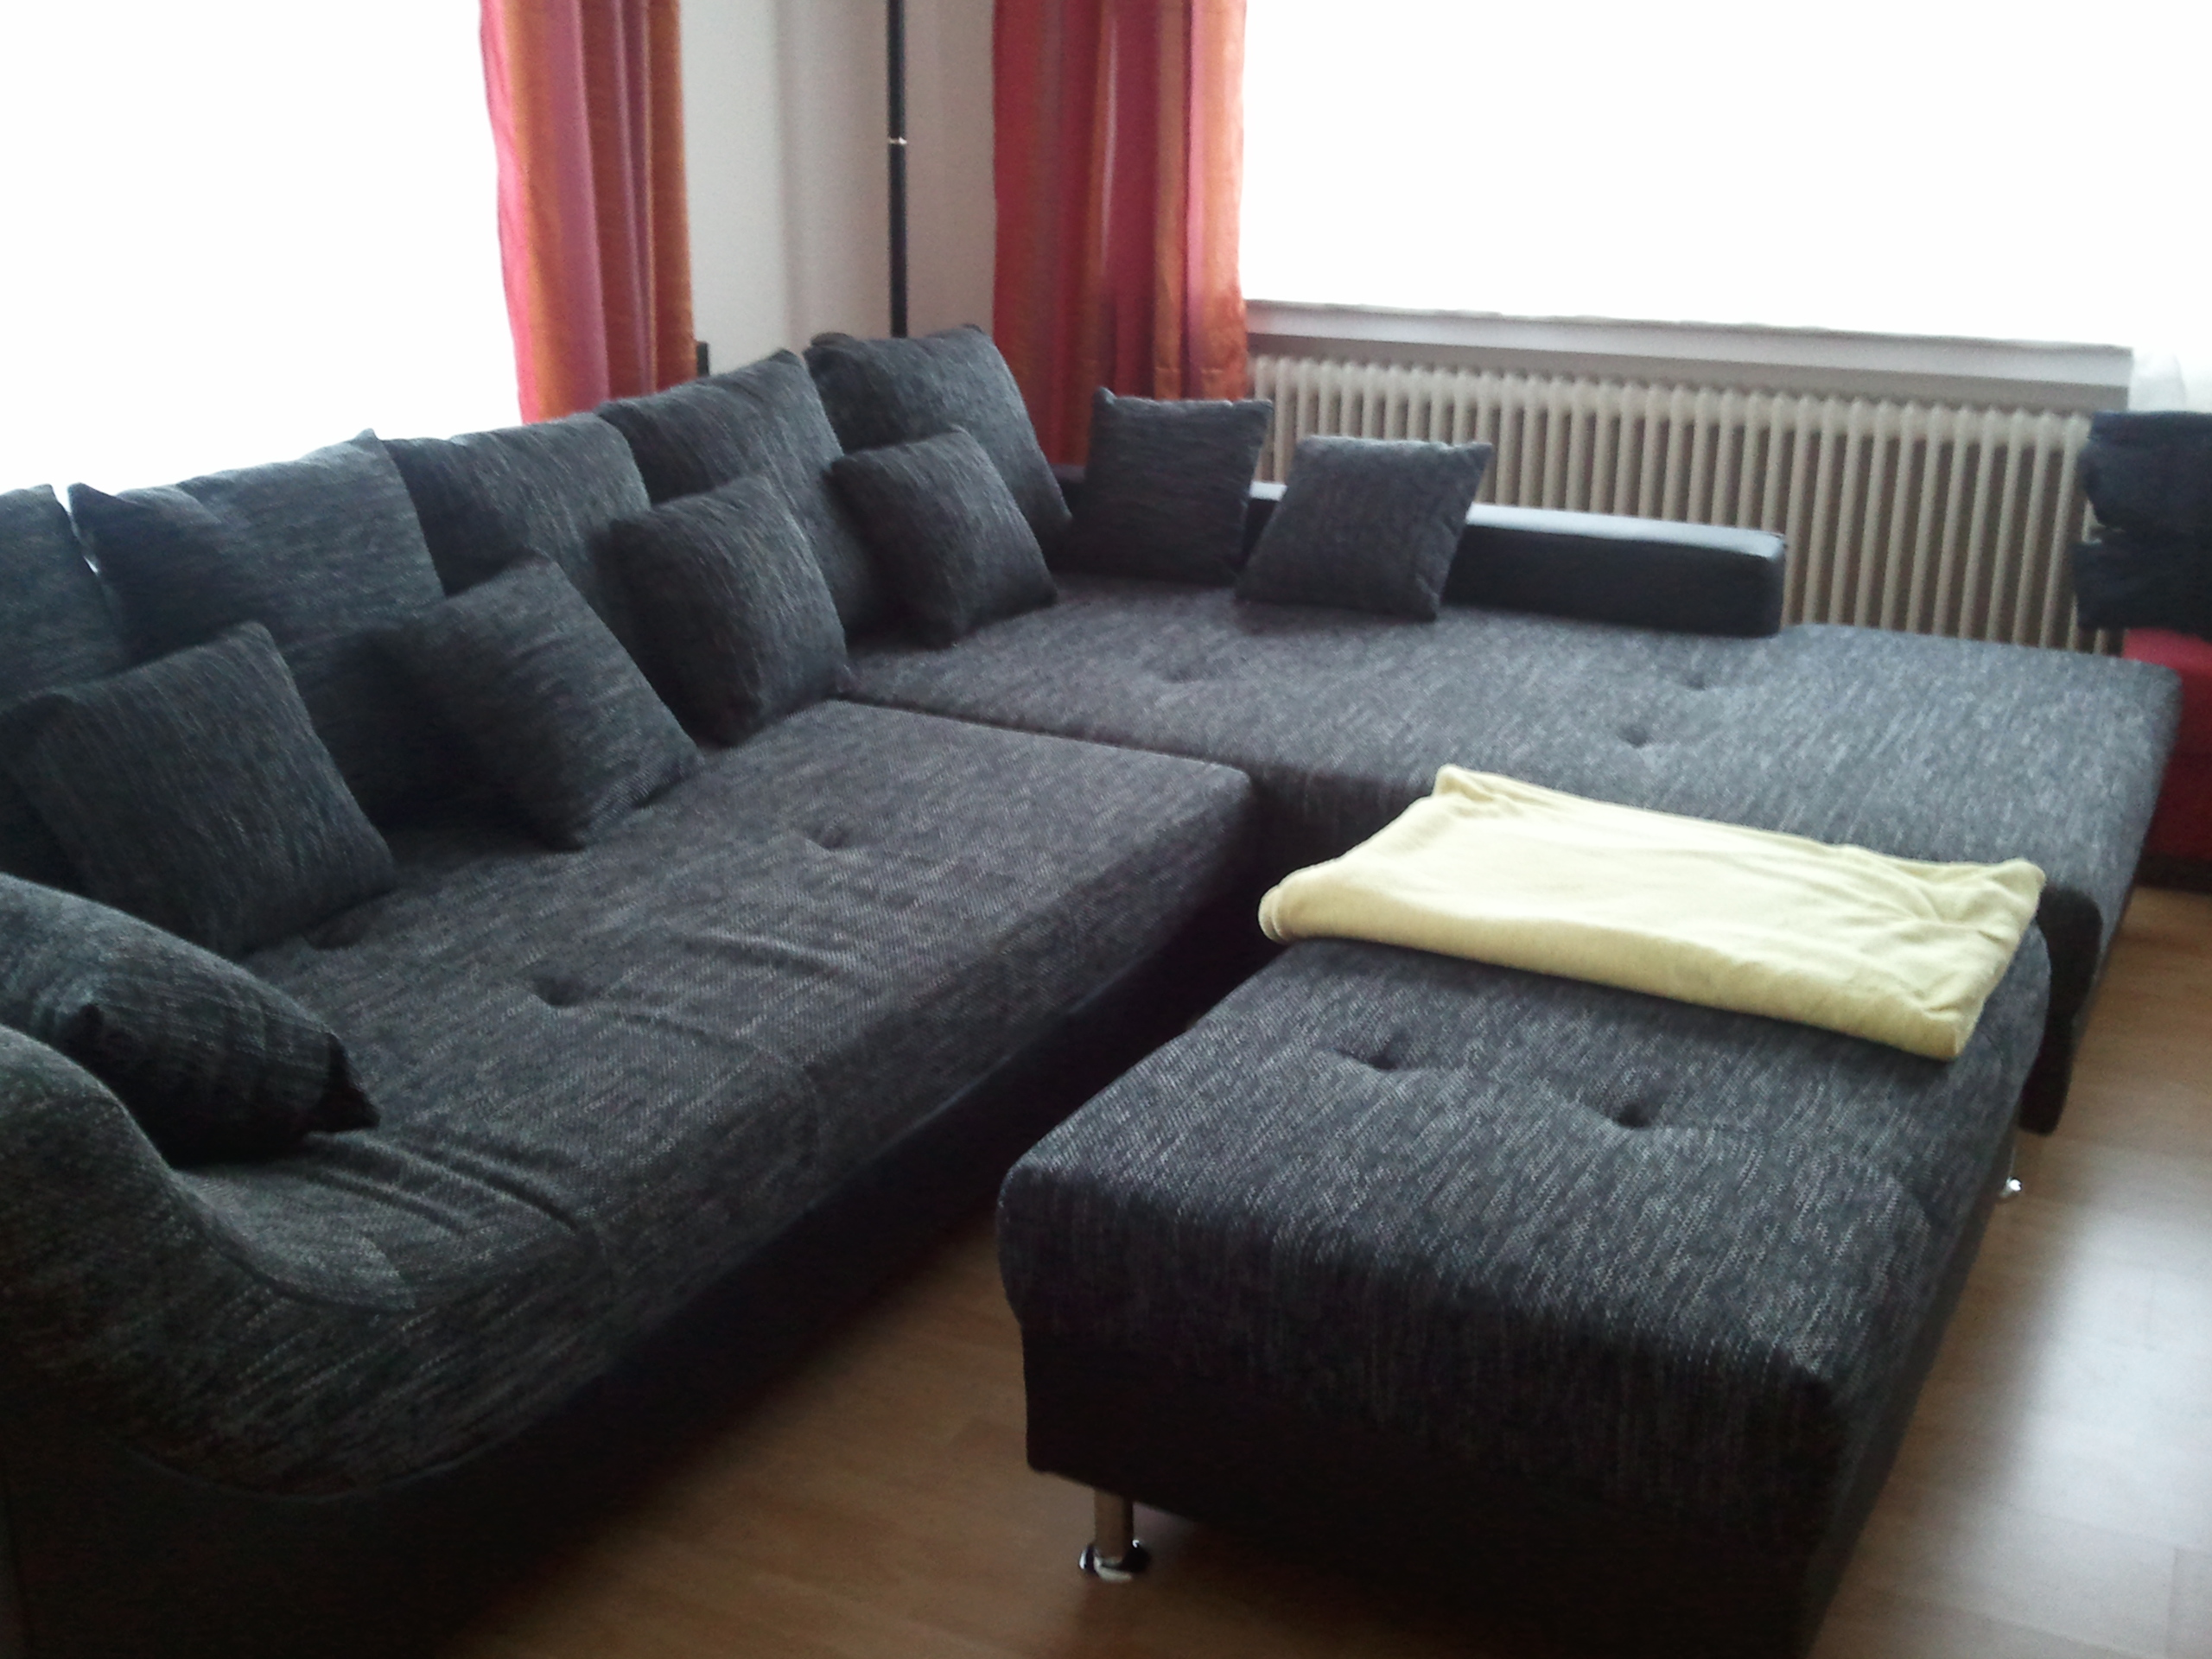 Kabs Schlafsofas Sofa Spedition Stunning Sofa James Armlehne Rechts With